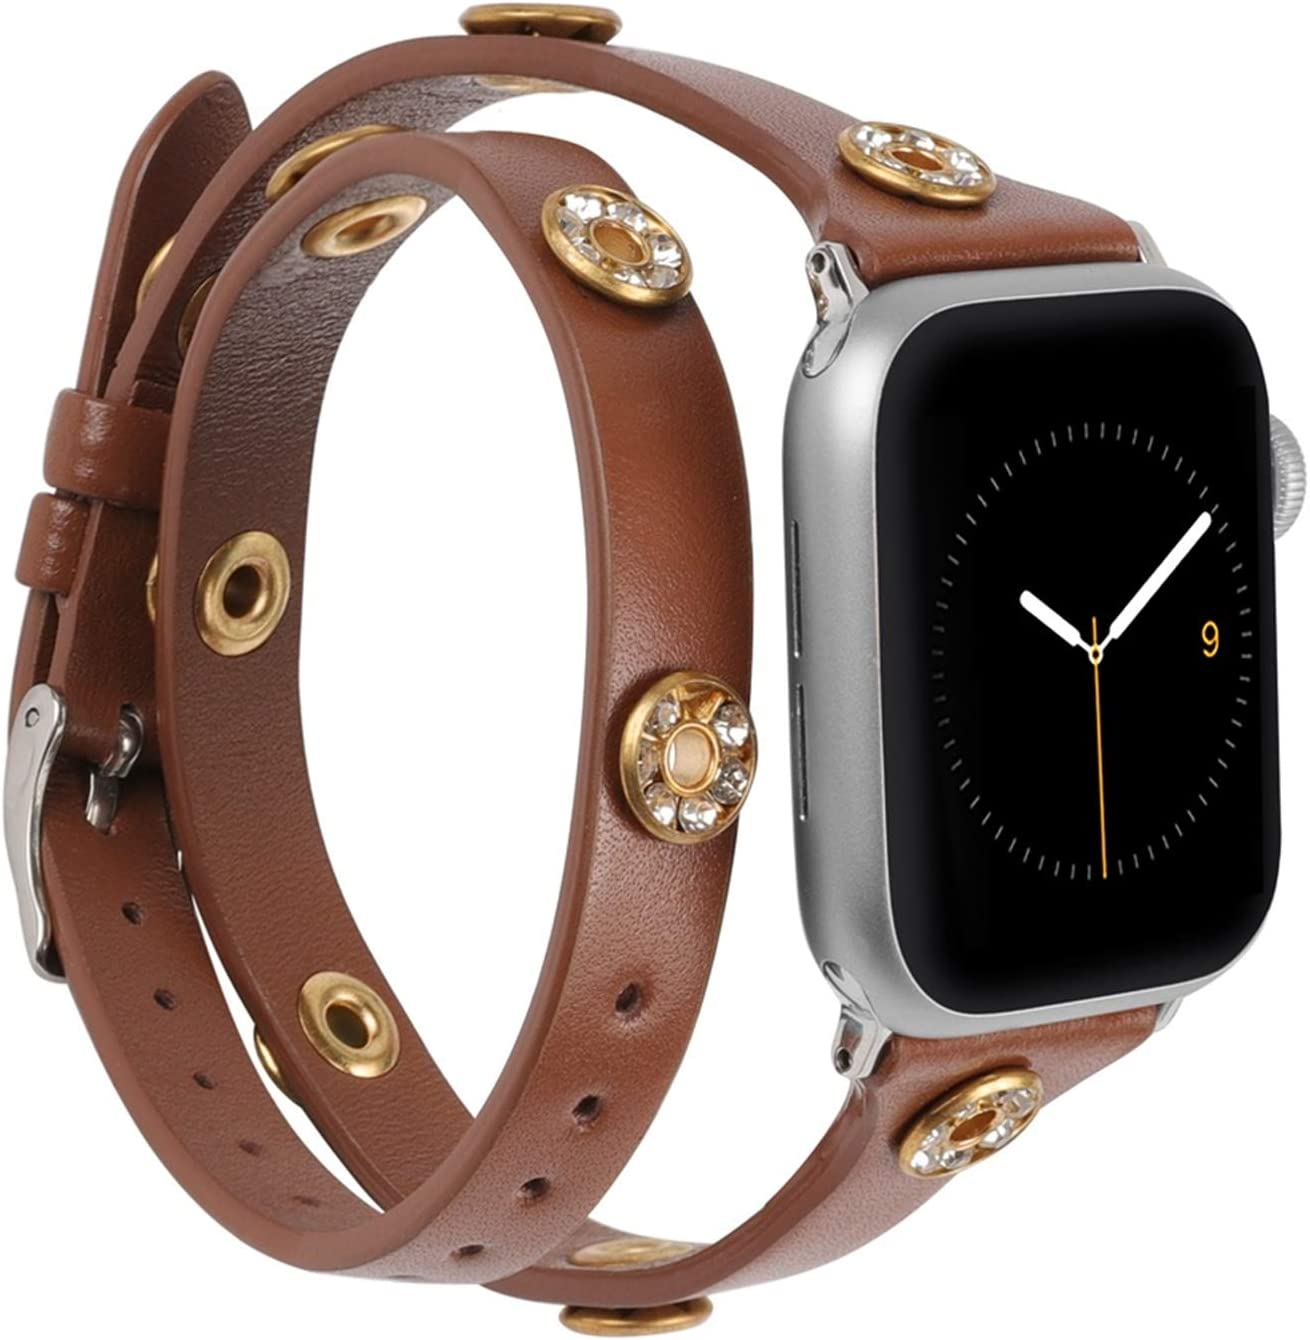 Moolia Compatible with Apple Watch Bands 44mm 42mm Women, Slim Double Wrap iWatch Bands with Bling Studs Straps Bracelet Accessories for Apple Watch Band Series 6/SE/5/4/3/2/1, Grey Floral